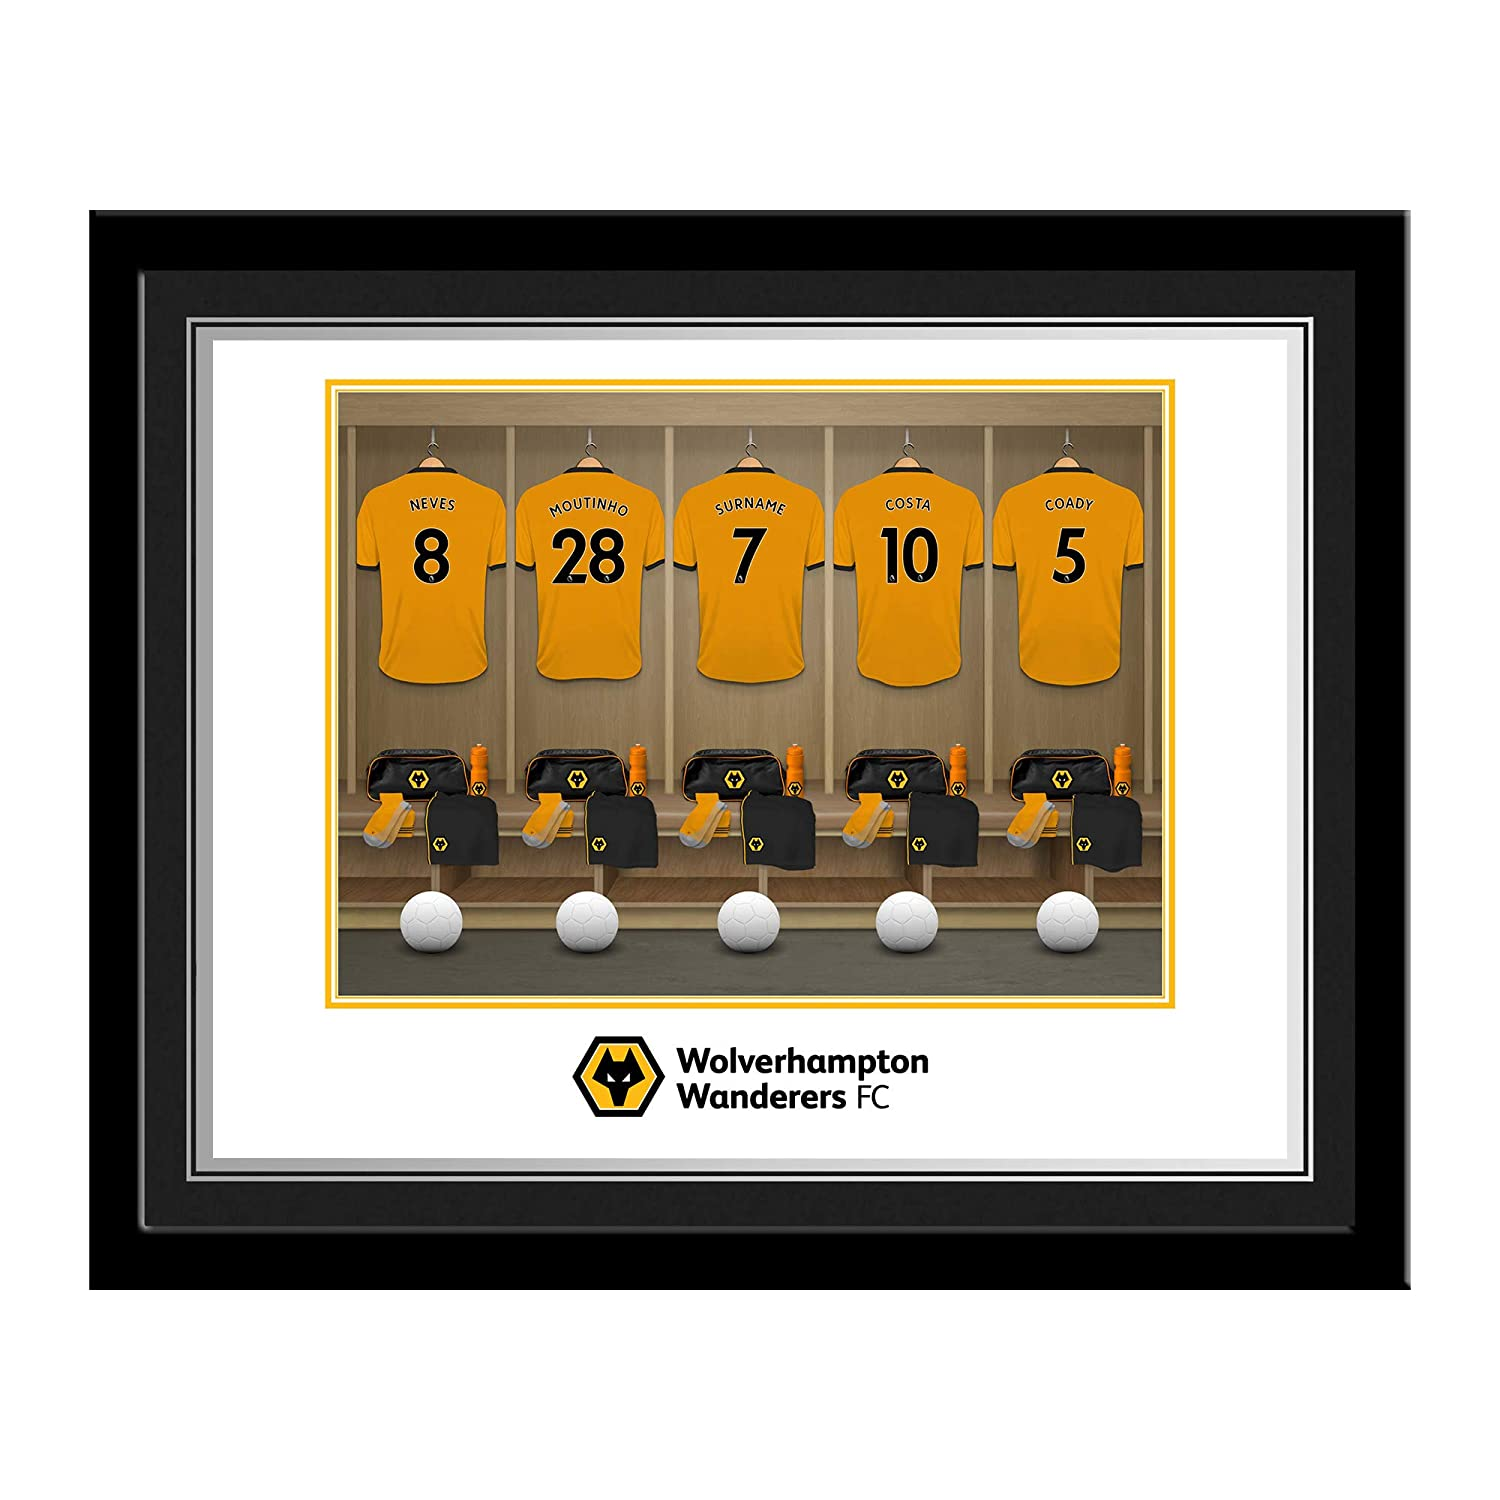 Official PERSONALISED Wolves Dressing Room Photo Framed - FREE PERSONALISATION Content Gateway